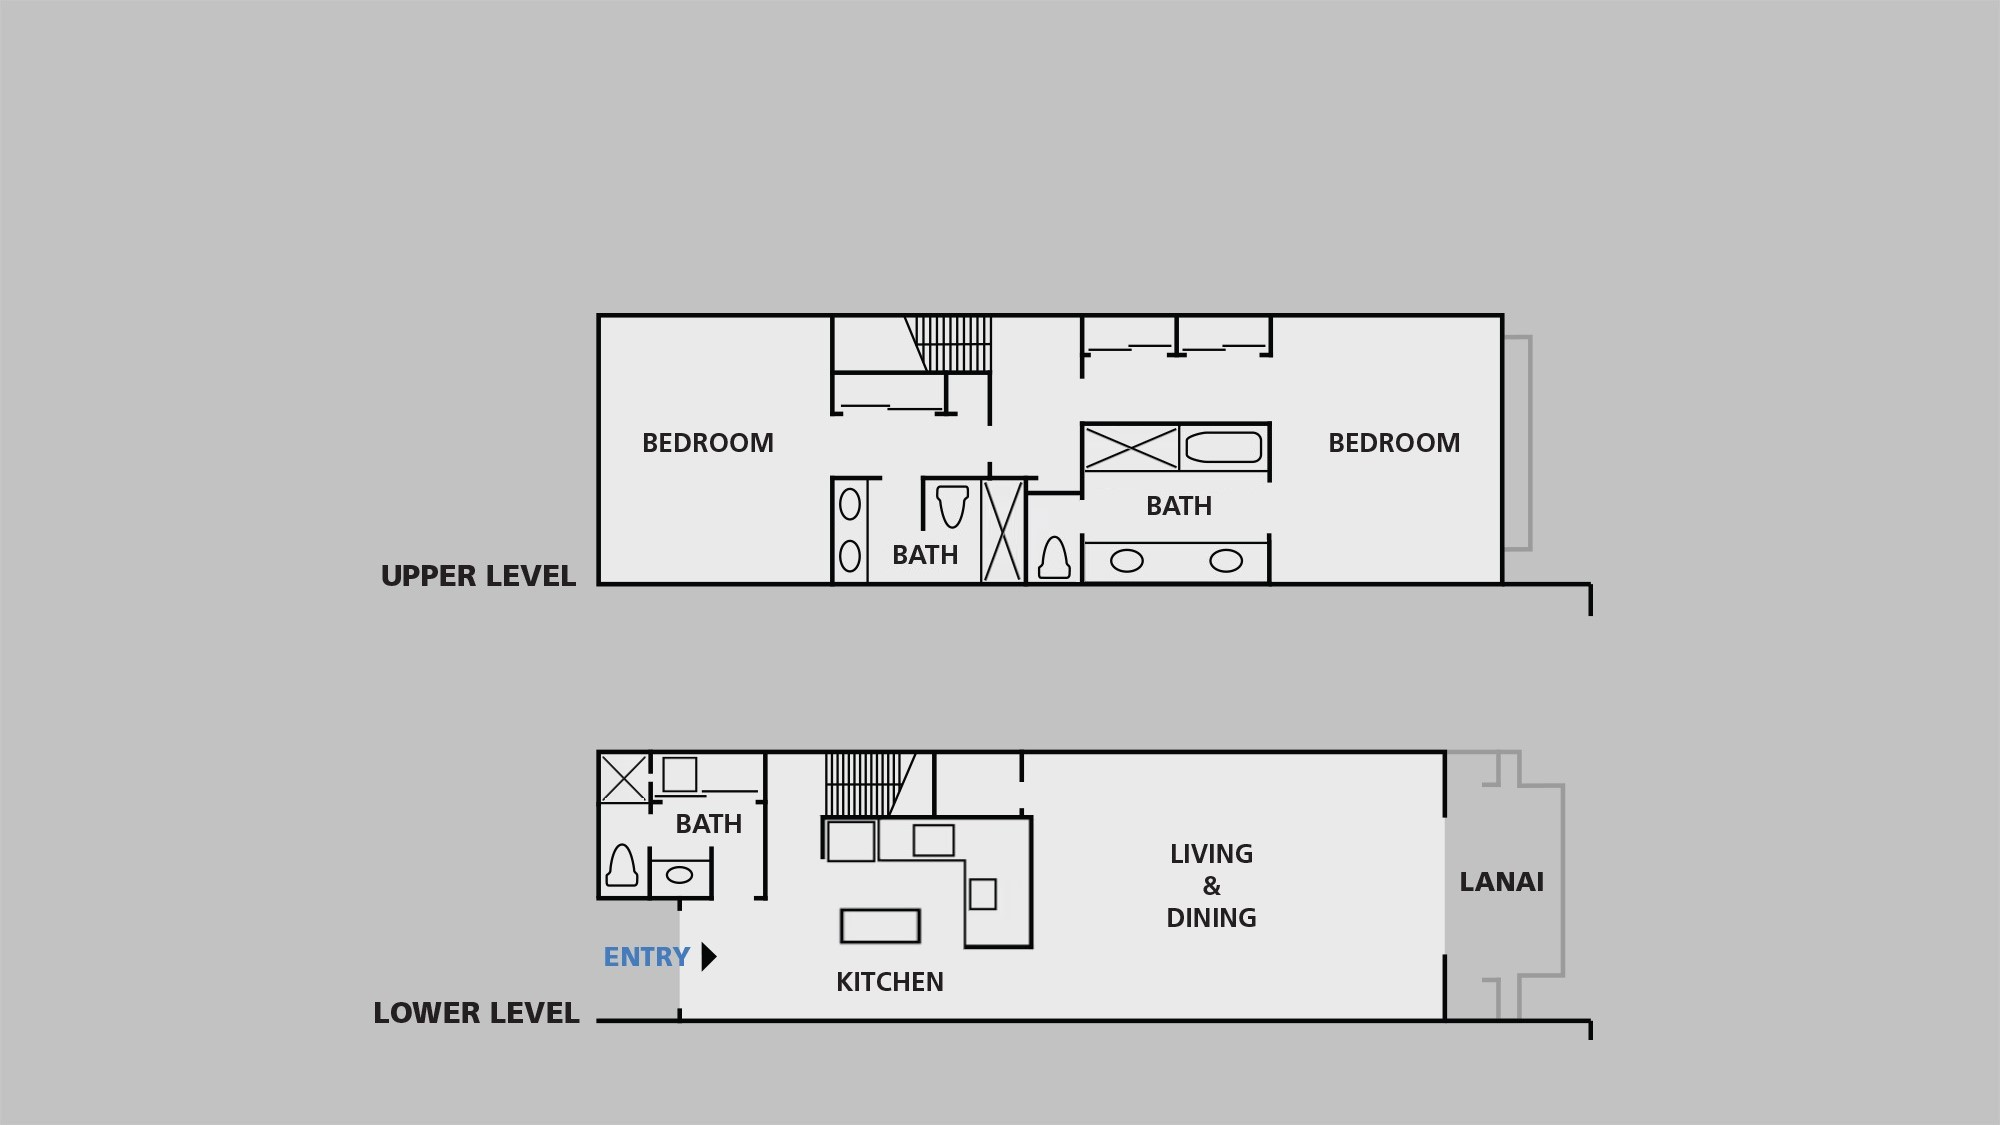 Poipu Kapili Resort Floor Plan - 2A2b